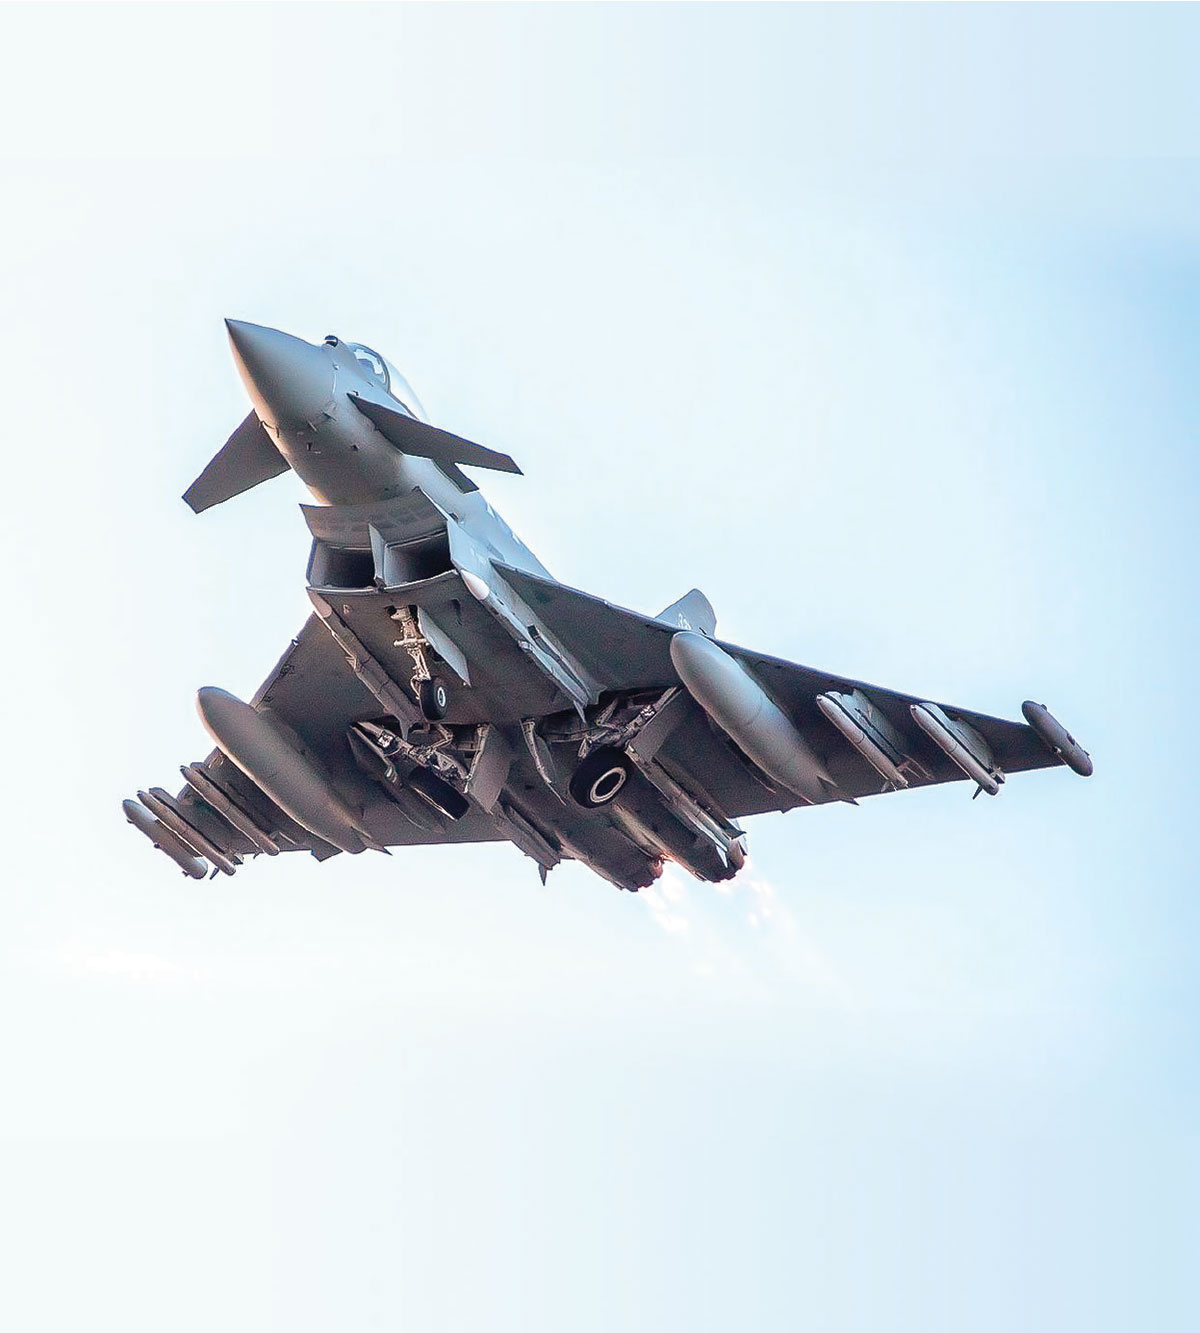 RAF Typhoons Armed with Meteor Air-to-Air Missile